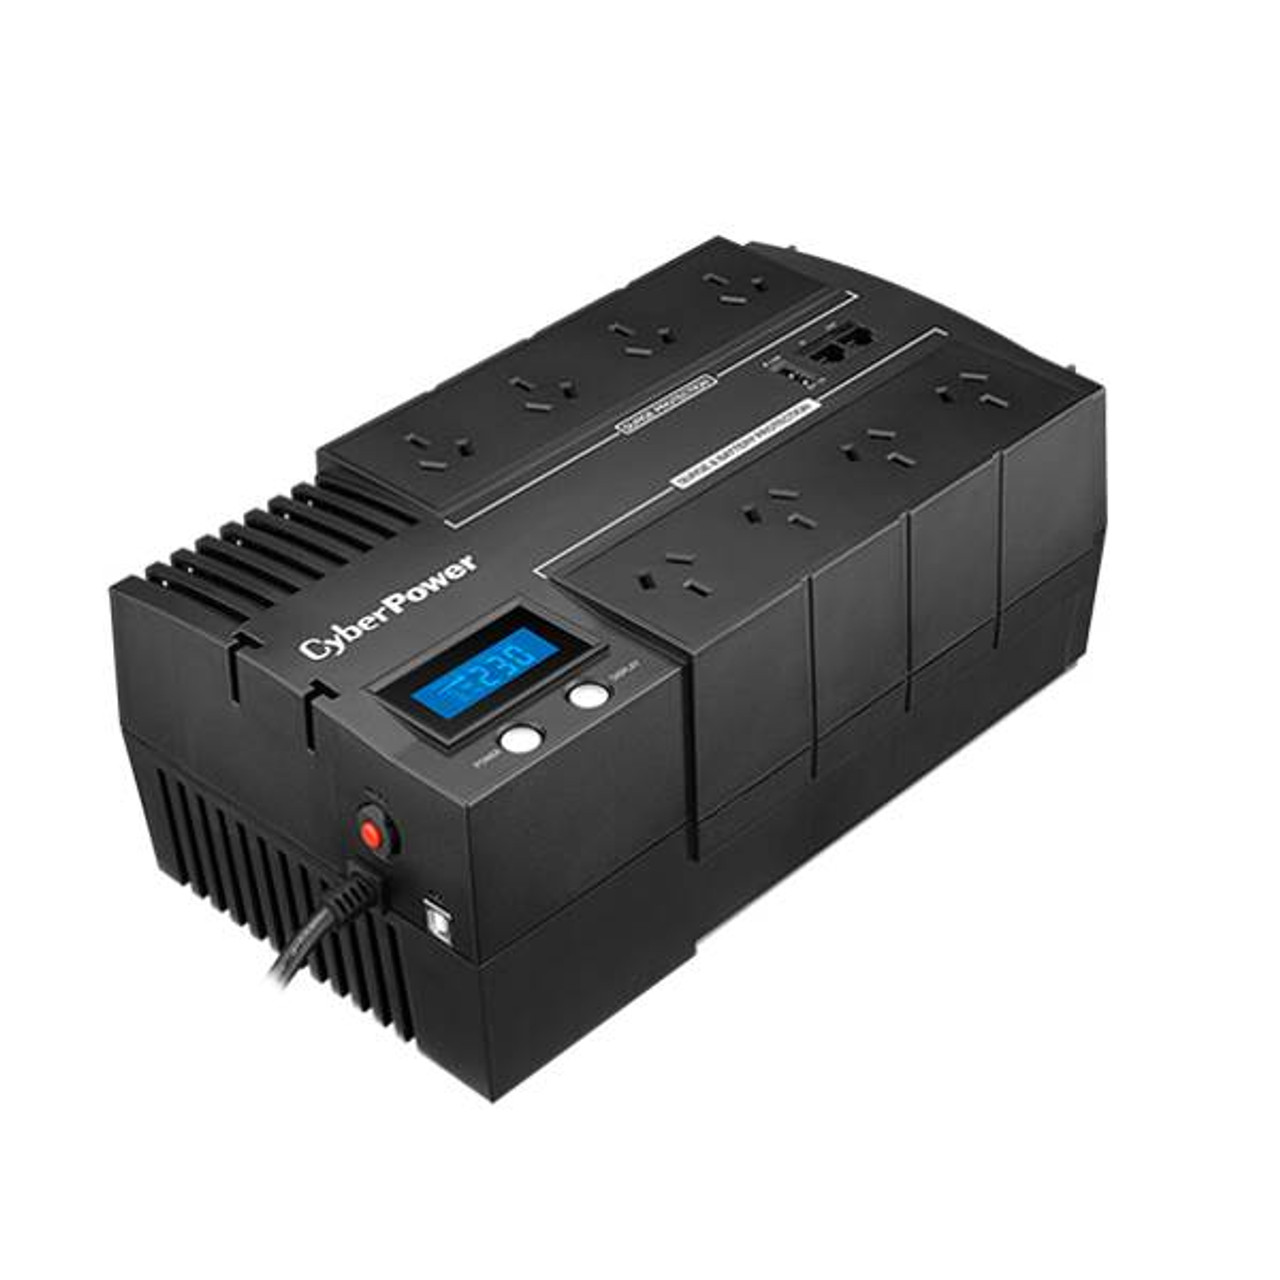 Product image for CyberPower BR850ELCD BRIC LCD 850VA / 510W Simulated Sine Wave UPS   CX Computer Superstore